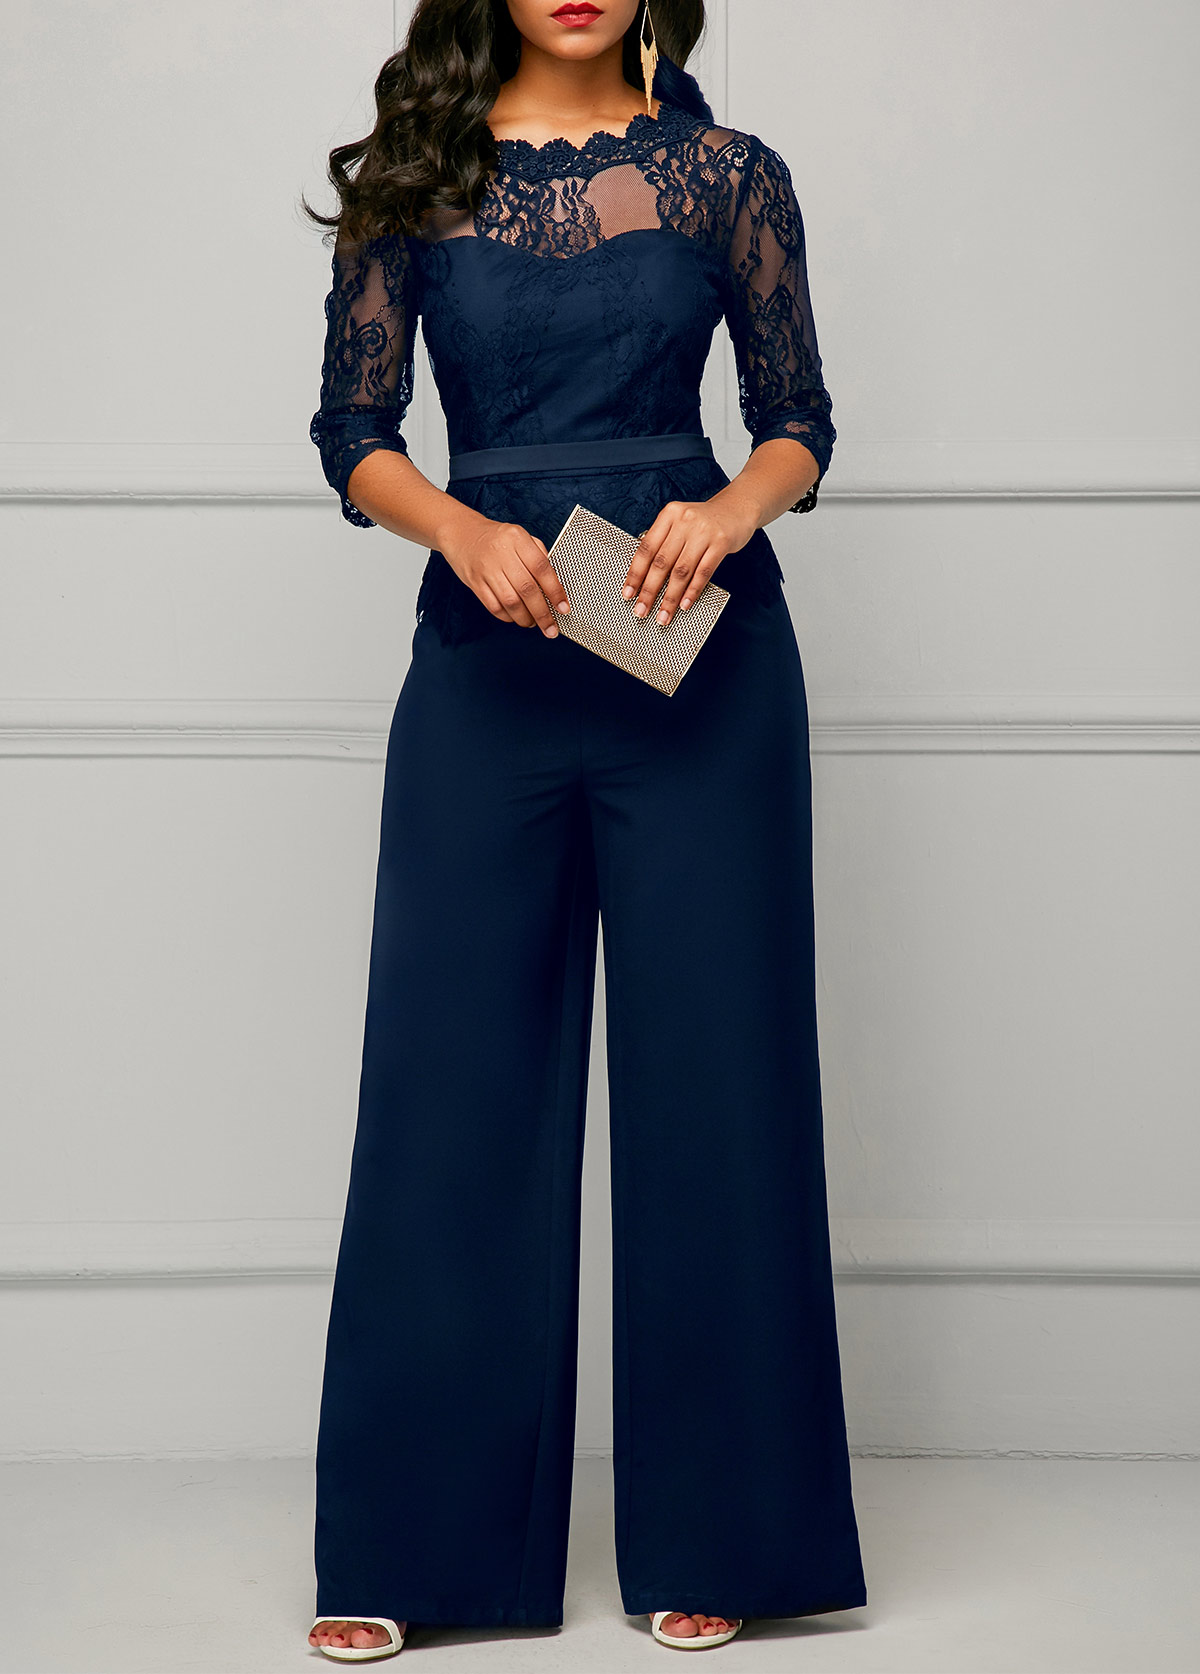 ROTITA Round Neck Lace Panel Three Quarter Sleeve Jumpsuit